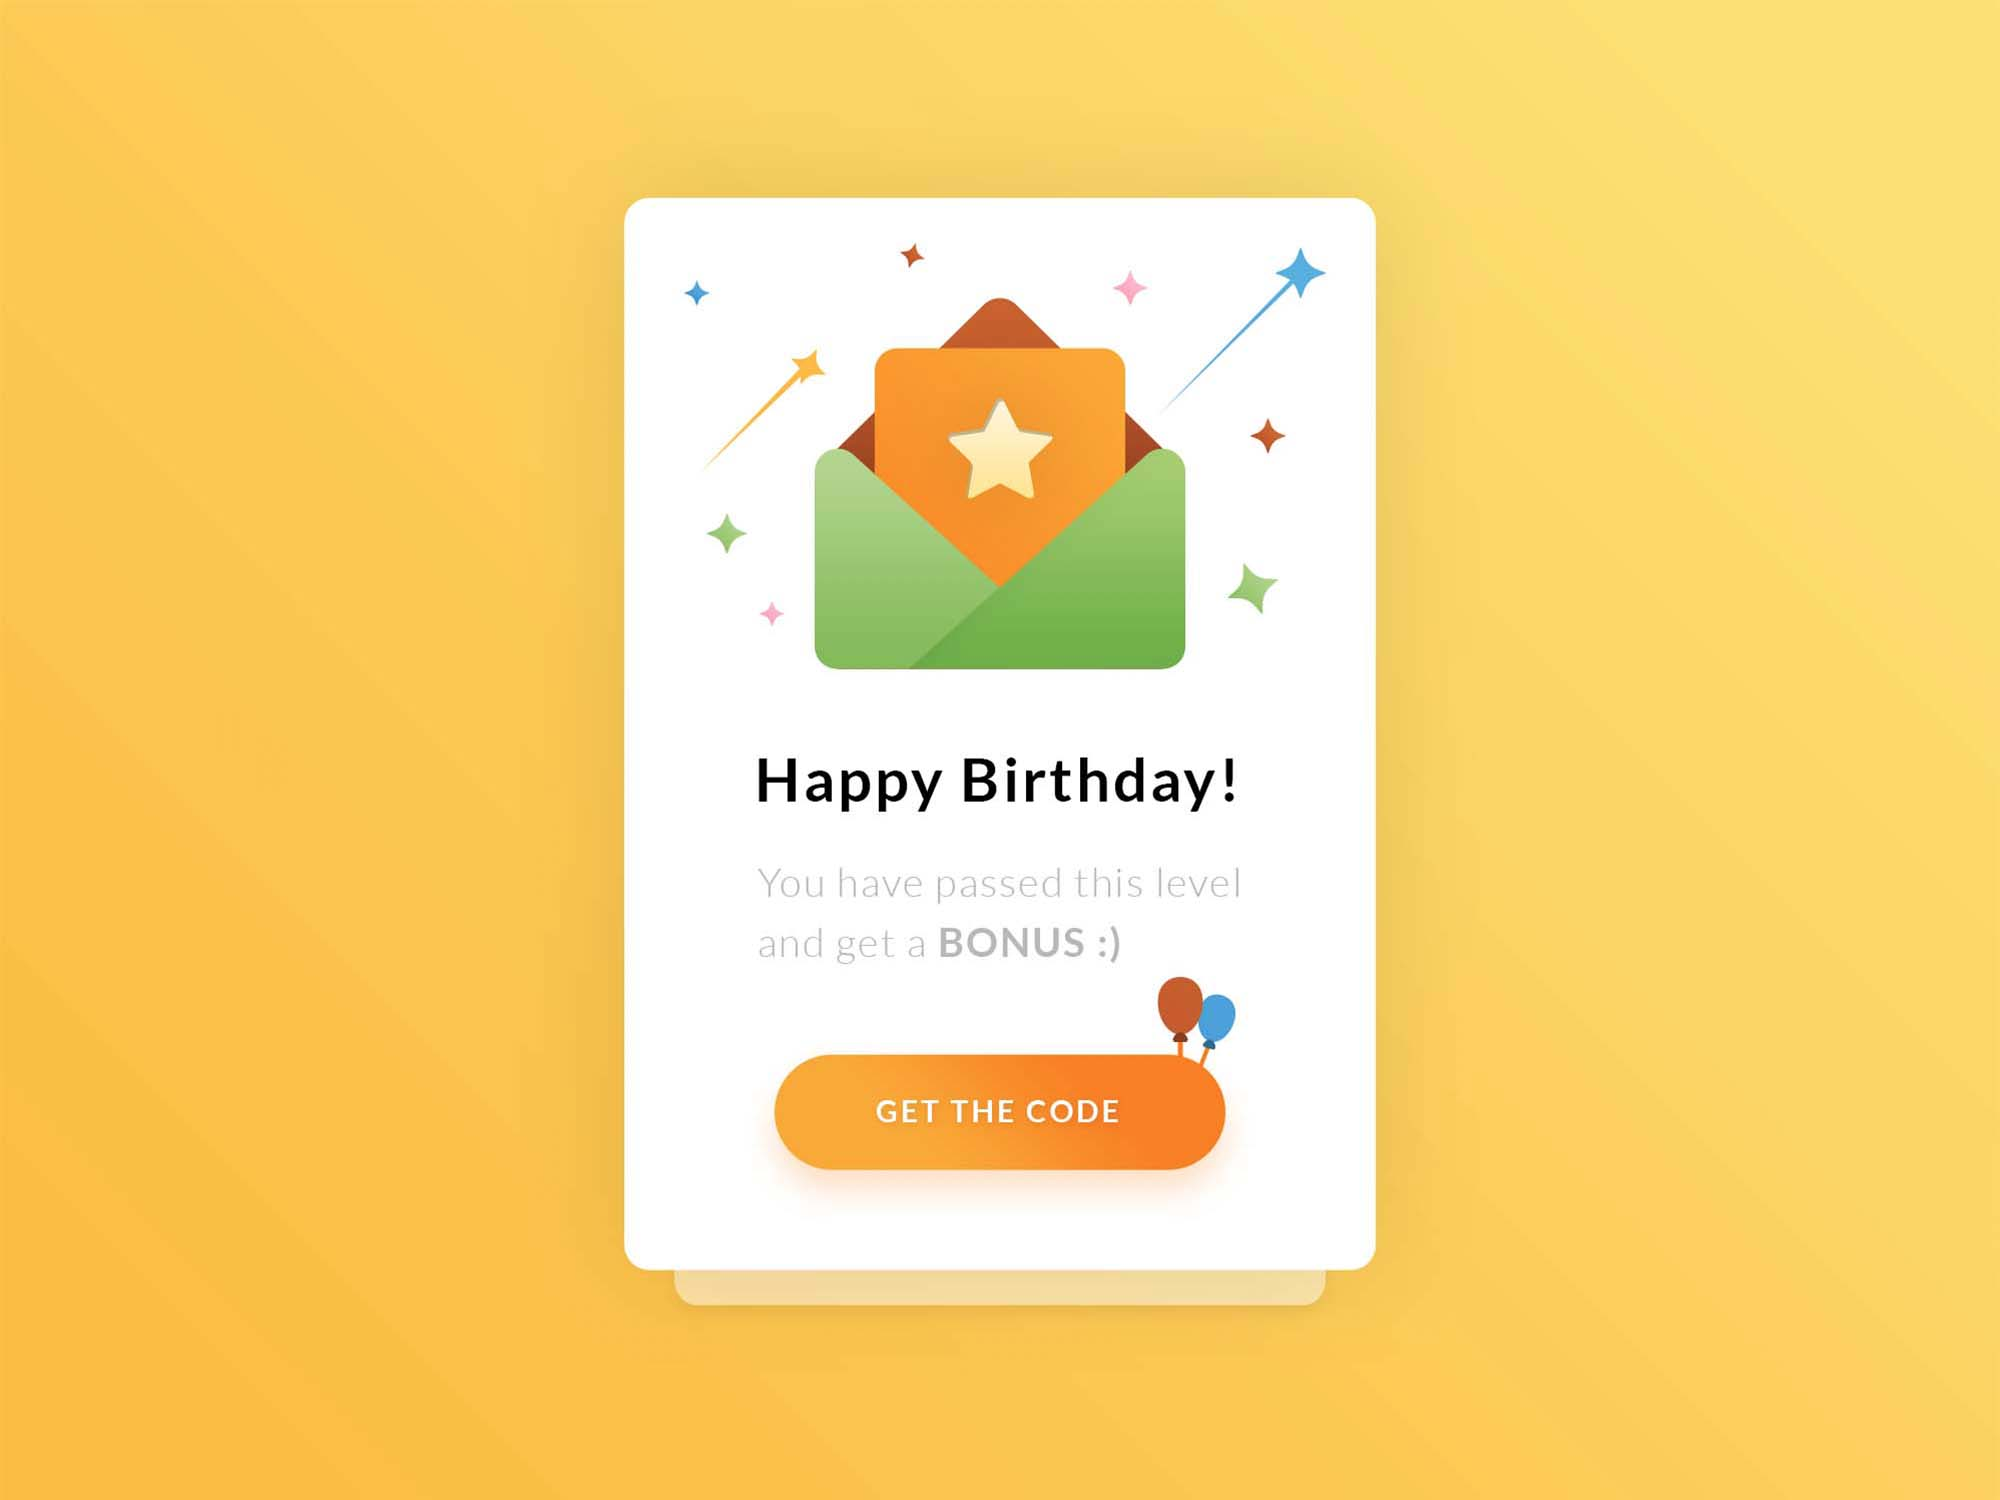 Happy Birthday UI-UX Template 2